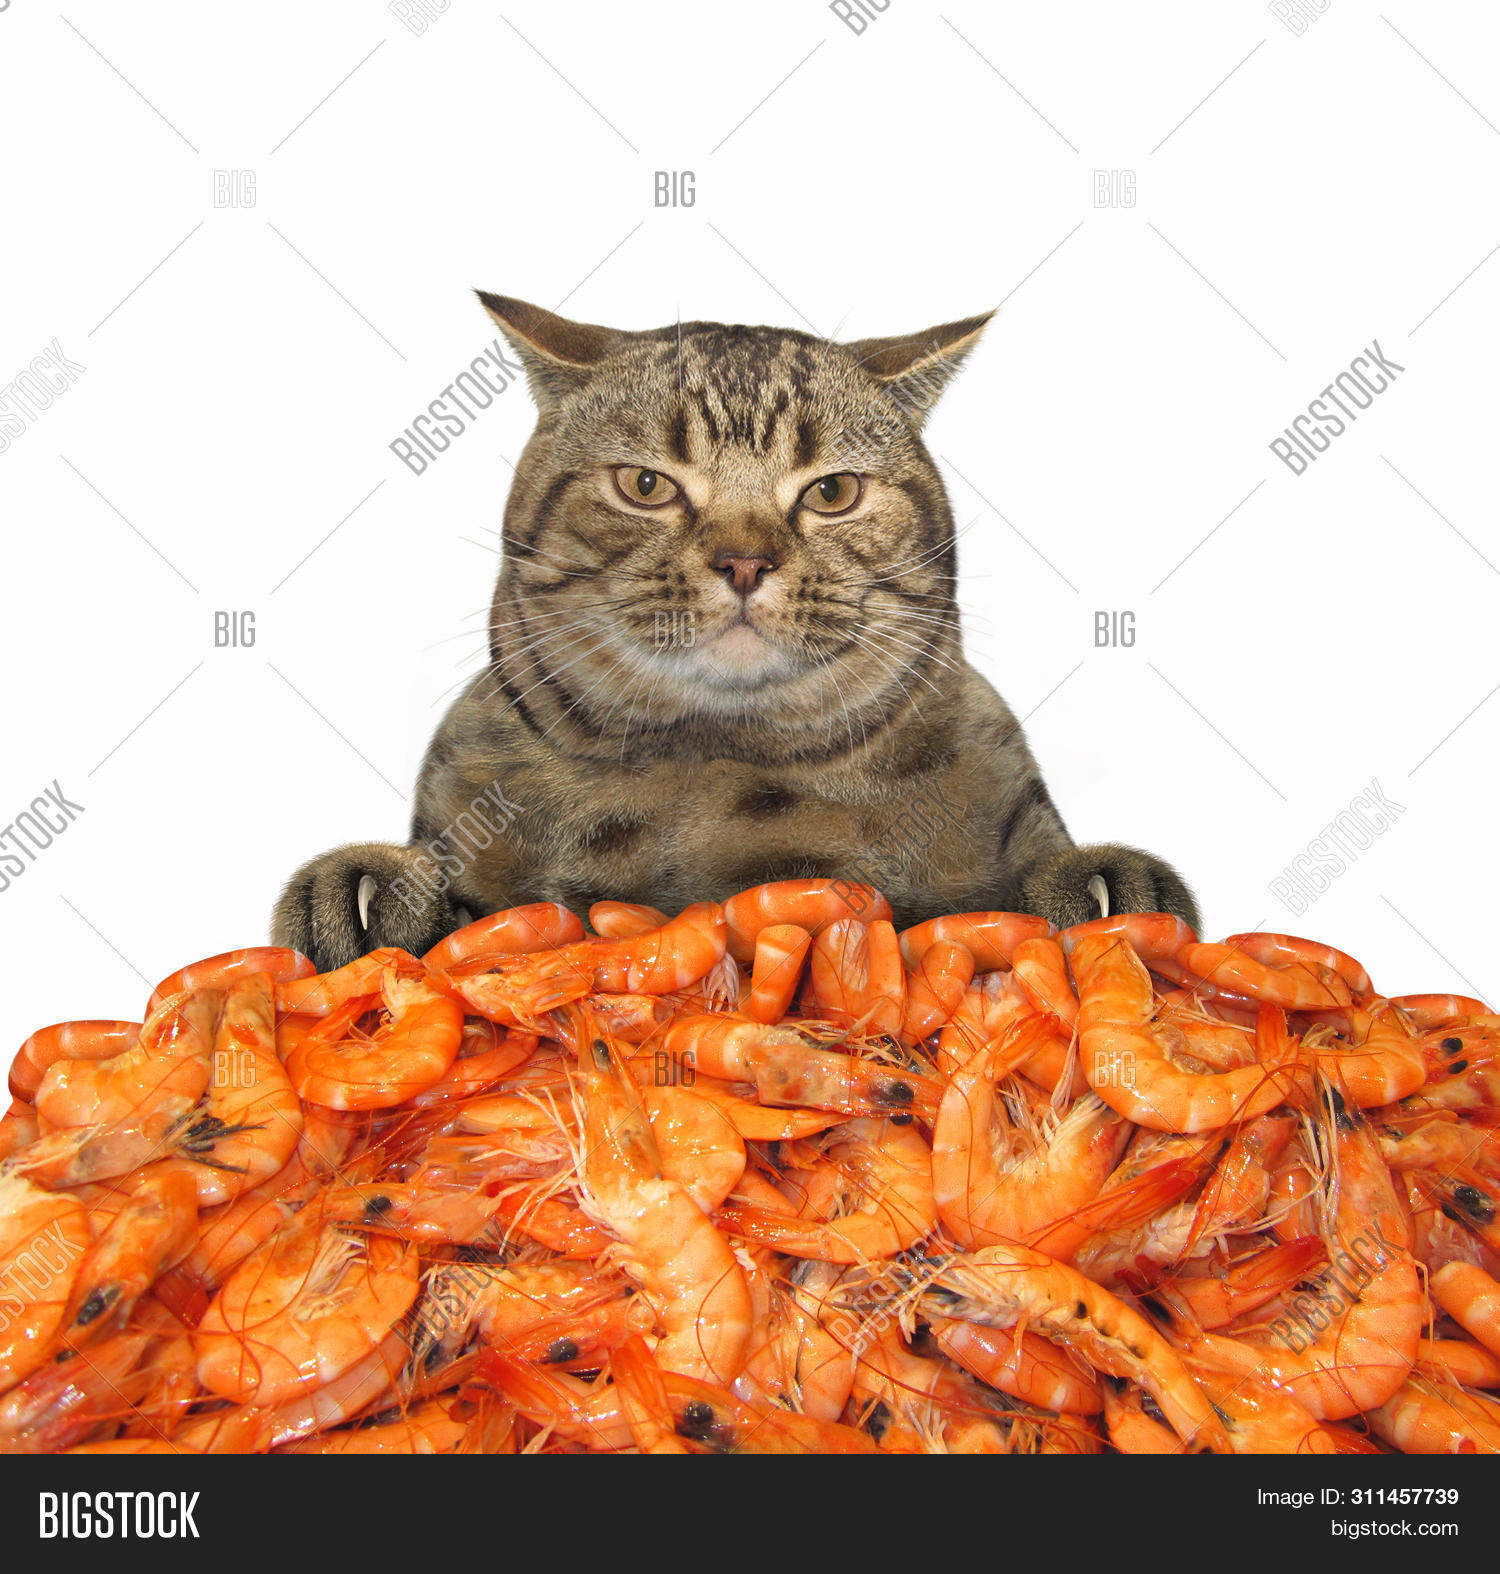 Hungry Cat Behind Pile Image & Photo (Free Trial) | Bigstock